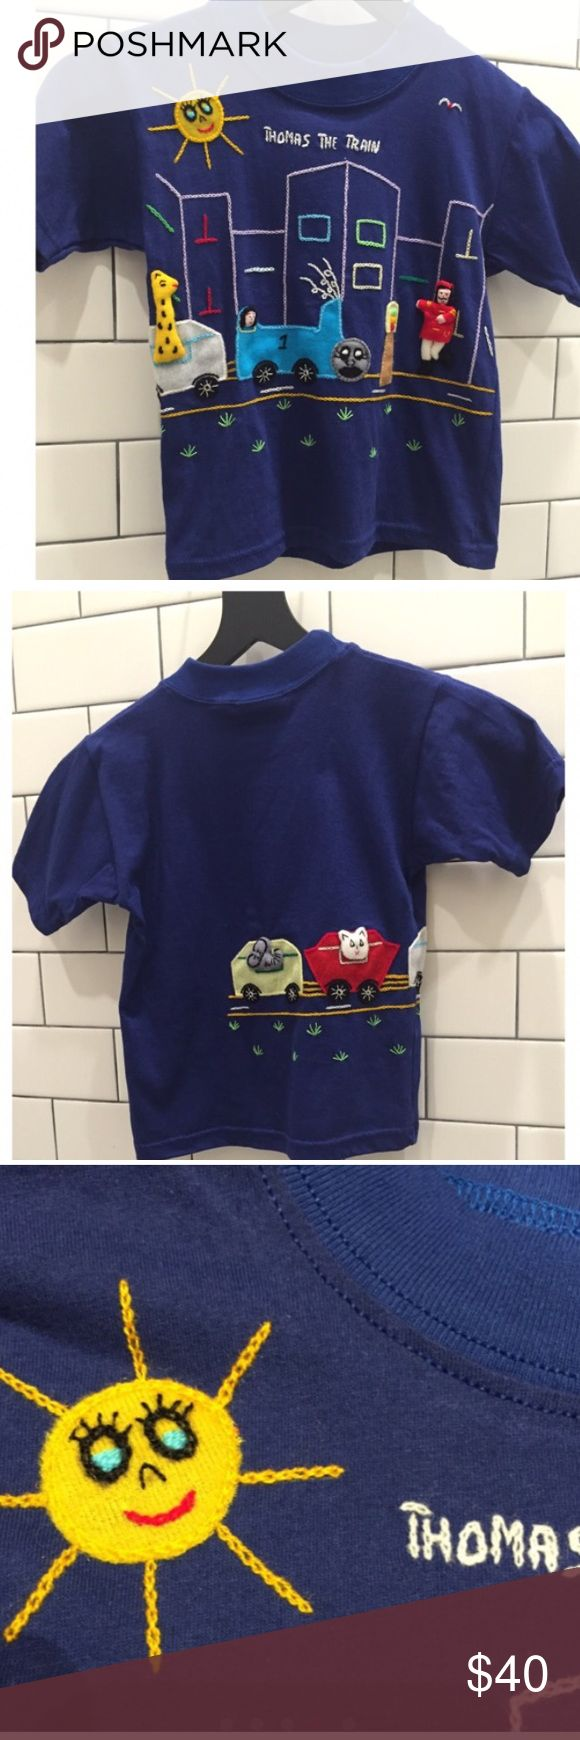 3D Hand Embroidered Thomas The Train T Shirt 4T Adorable 3D Hand Embroidered & Very Detailed Thomas The Train T Shirt Size 4T,  NEW WITHOUT TAG, Shirt is navy blue. Machine washable & dryer safe, 100% cotton, From a smoke free home. Made by: Fairy Tales On Parade By Judy! Discount On Kids Clothes When Bundled! 😎 Fairy Tales On Parade Shirts & Tops Tees - Short Sleeve